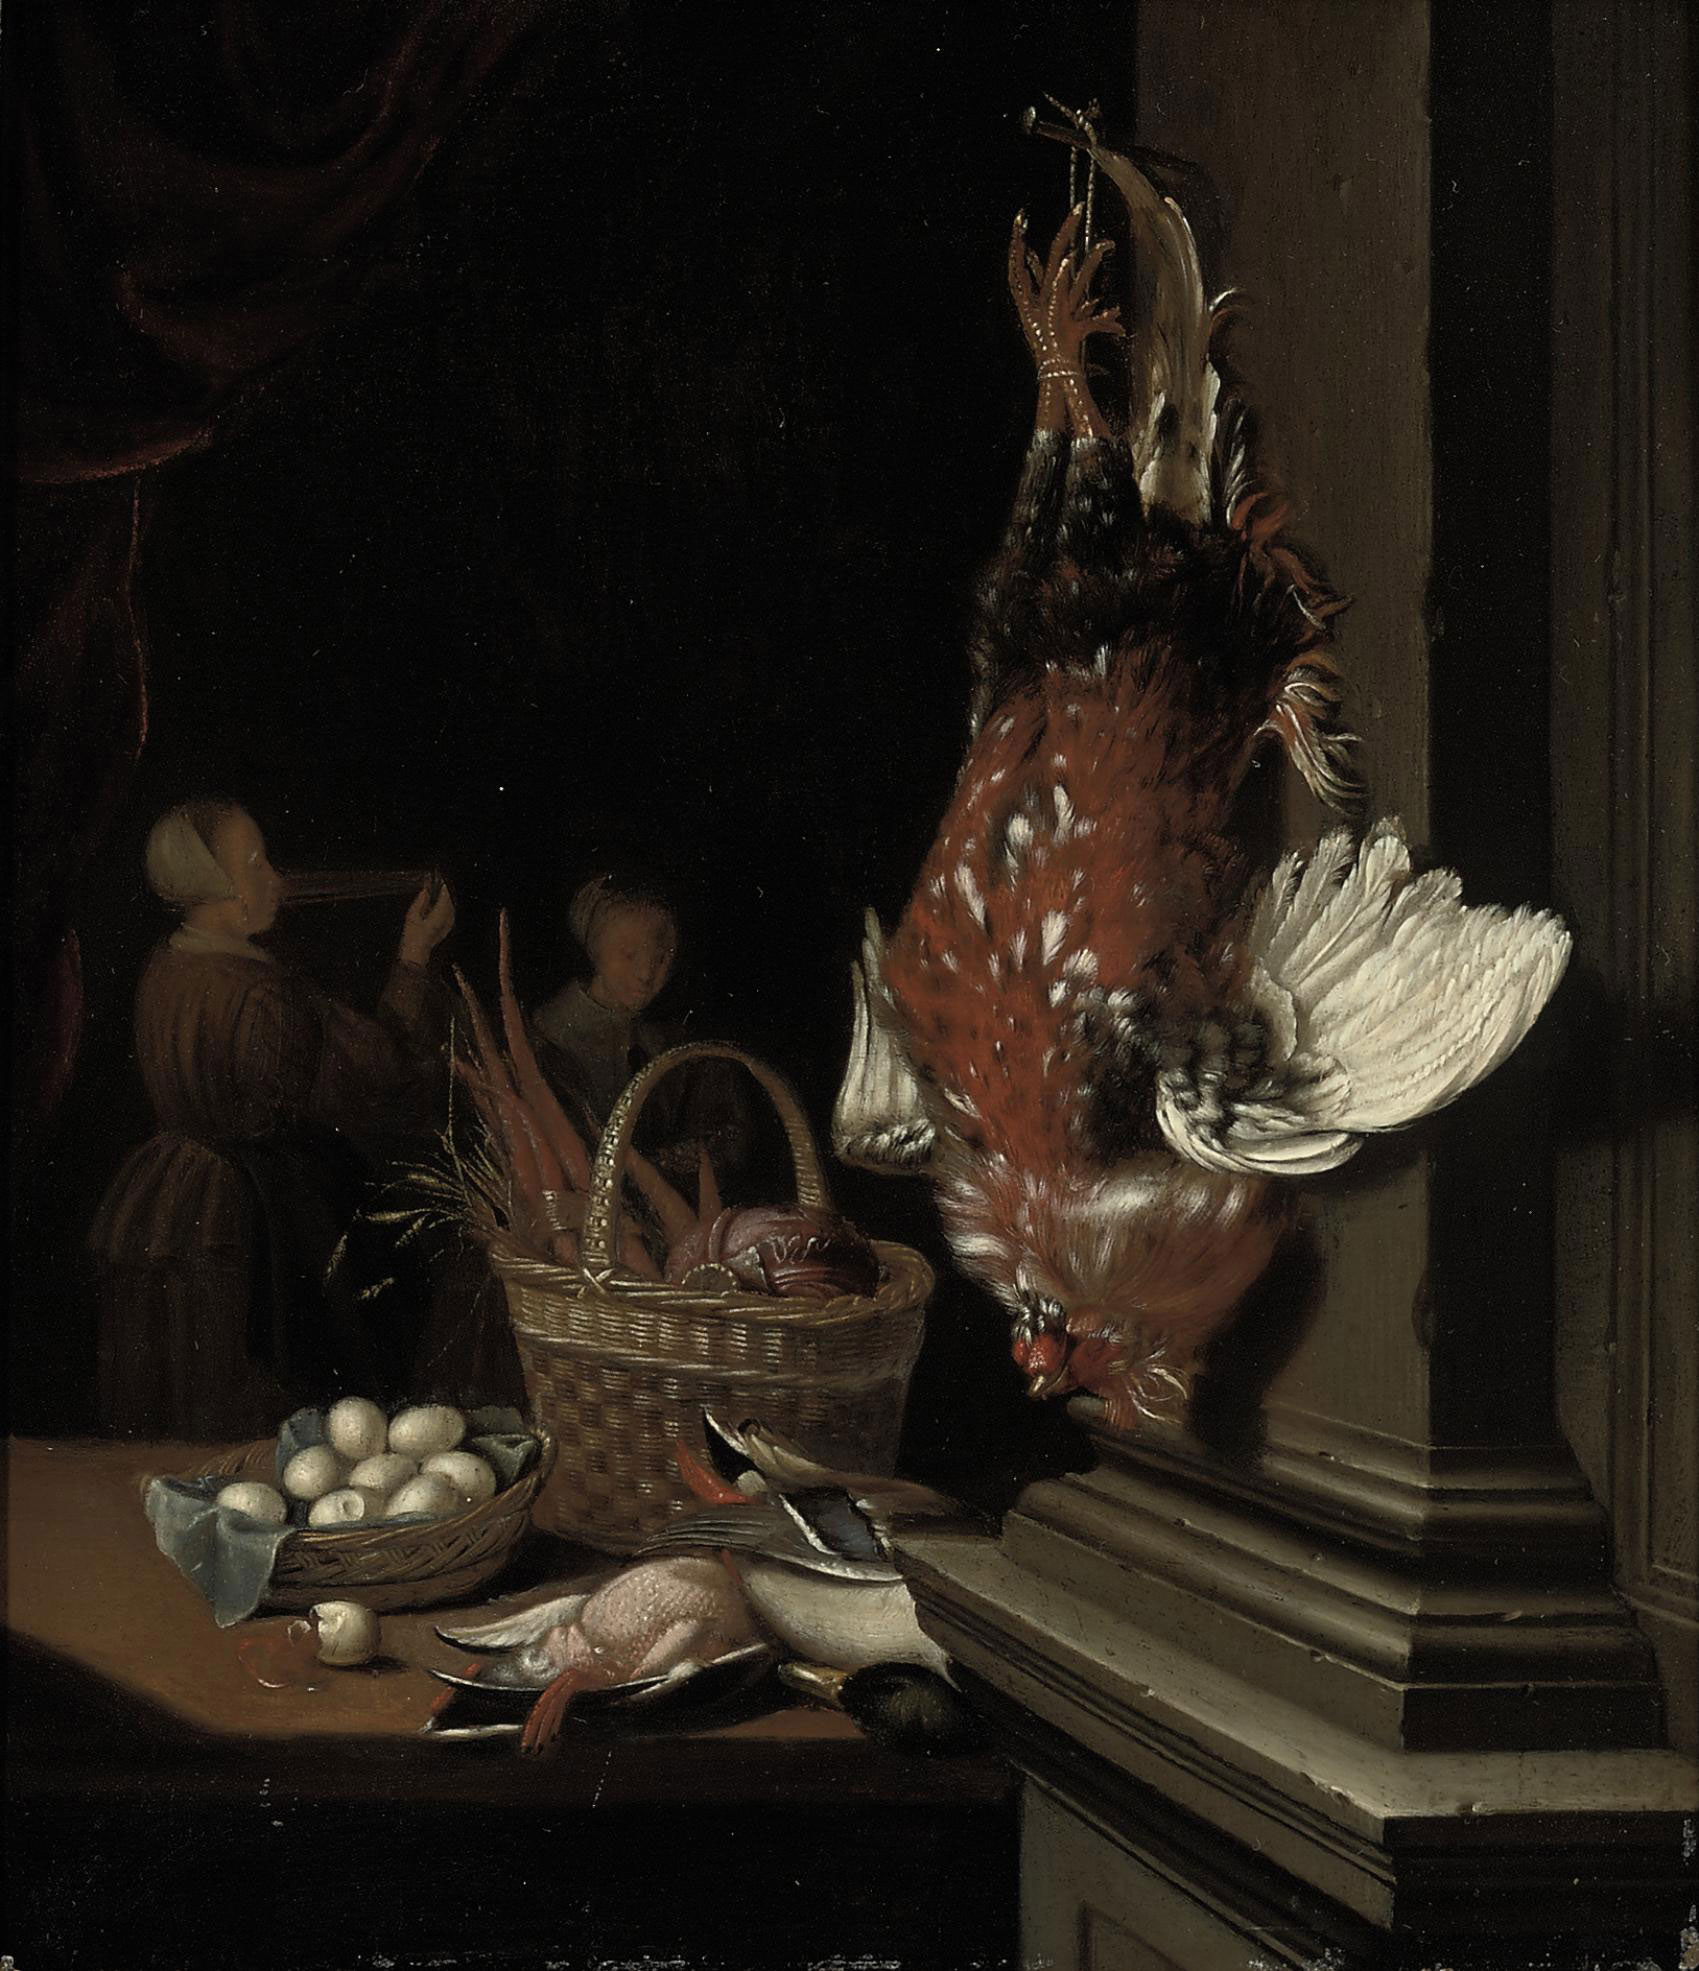 A dead cockerel hanging from a nail, ducks, eggs and carrots in wicker baskets on a table in an interior, two maids beyond